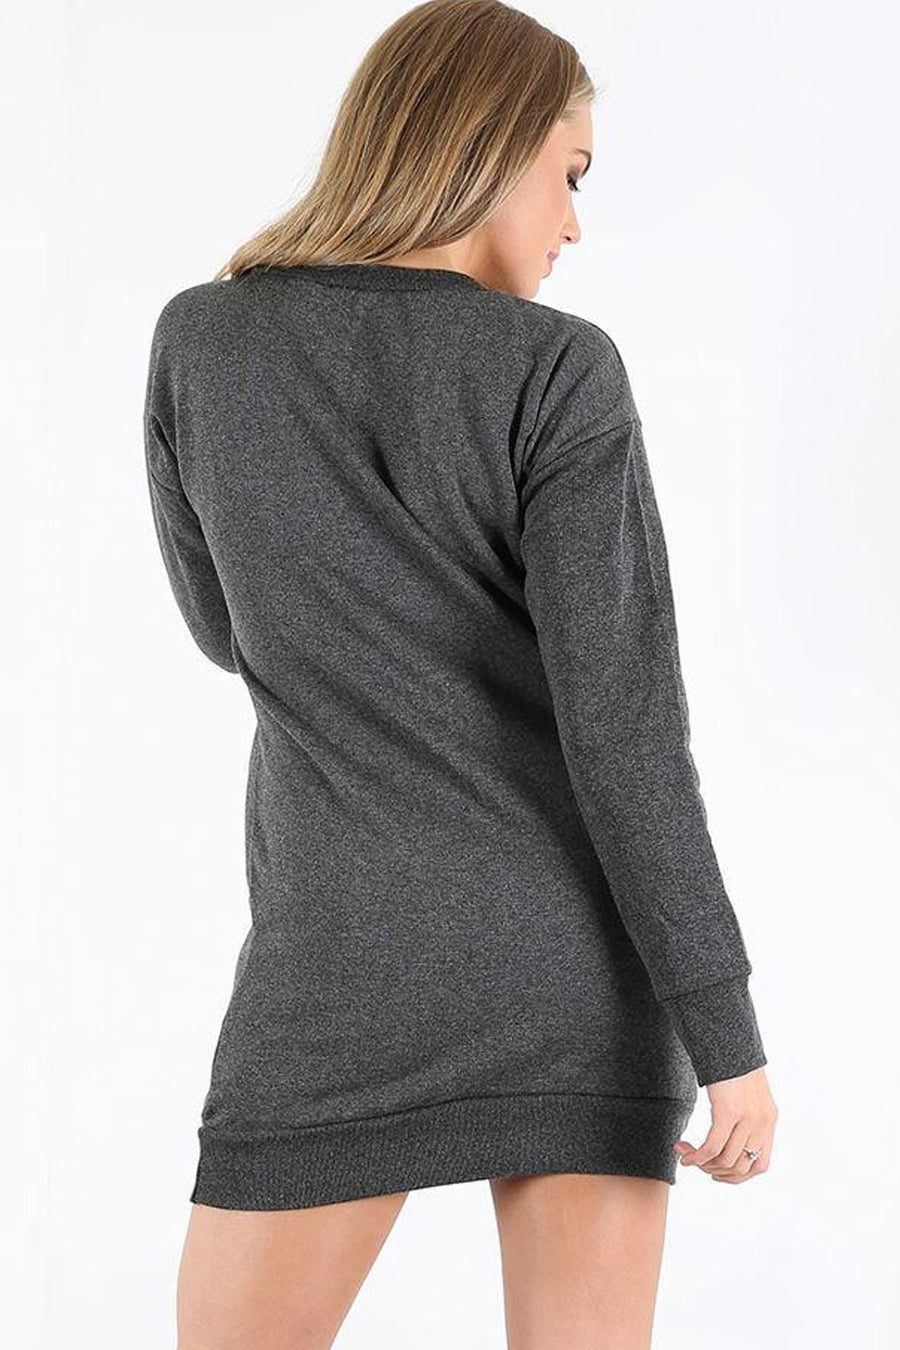 Long Sleeve Reindeer Grey Jumper Dress - bejealous-com